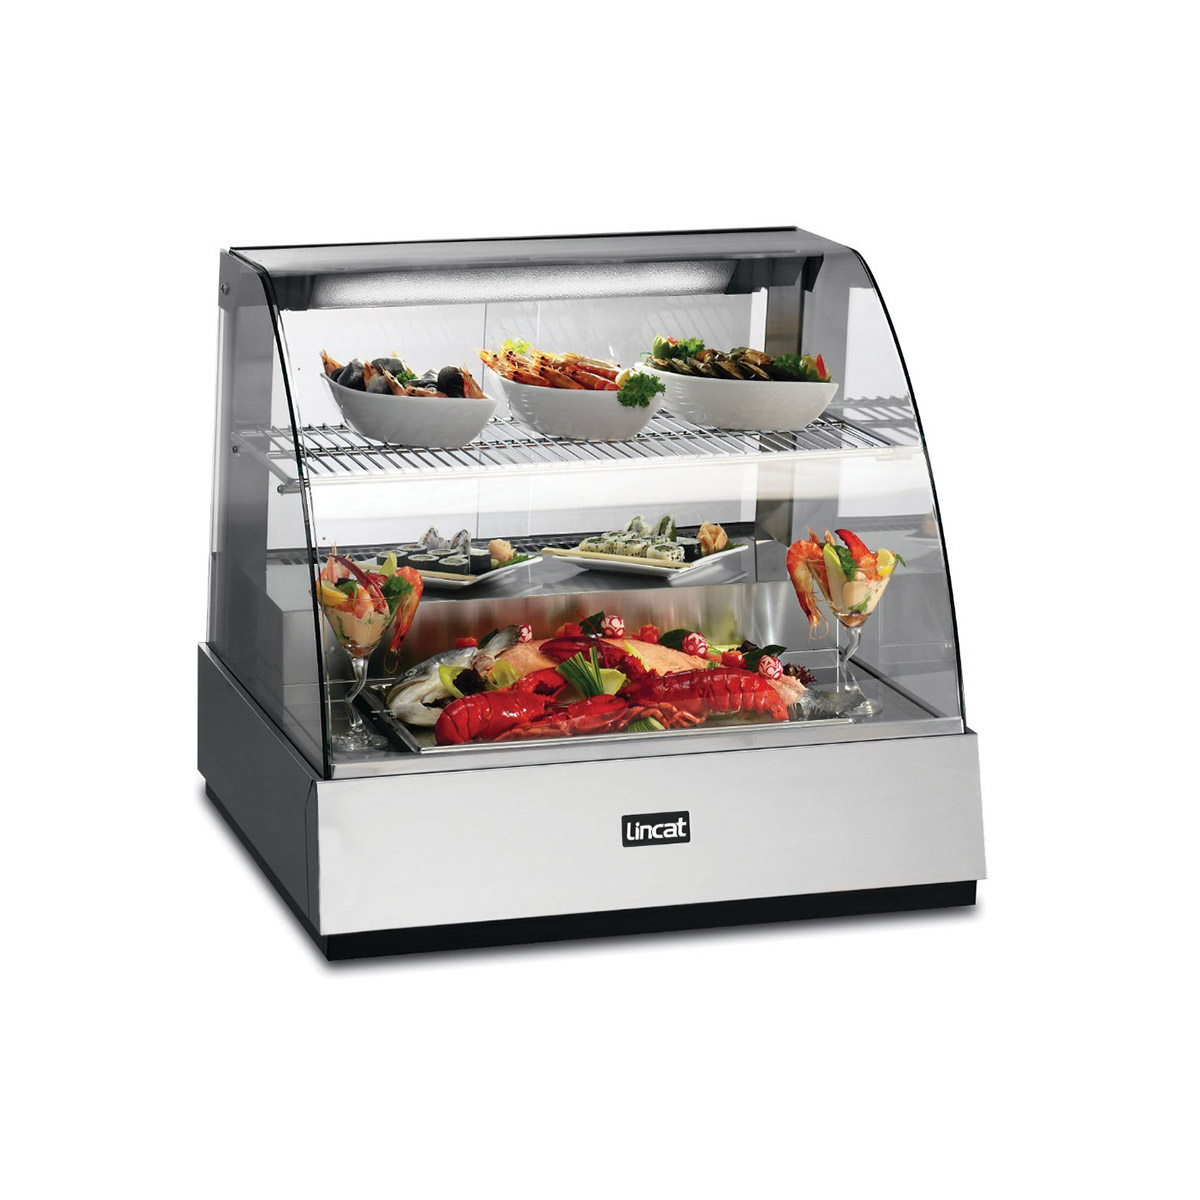 SCR785 - Lincat Seal Counter-top Refrigerated Food Display Showcase - W 785 mm - 0.602 kW